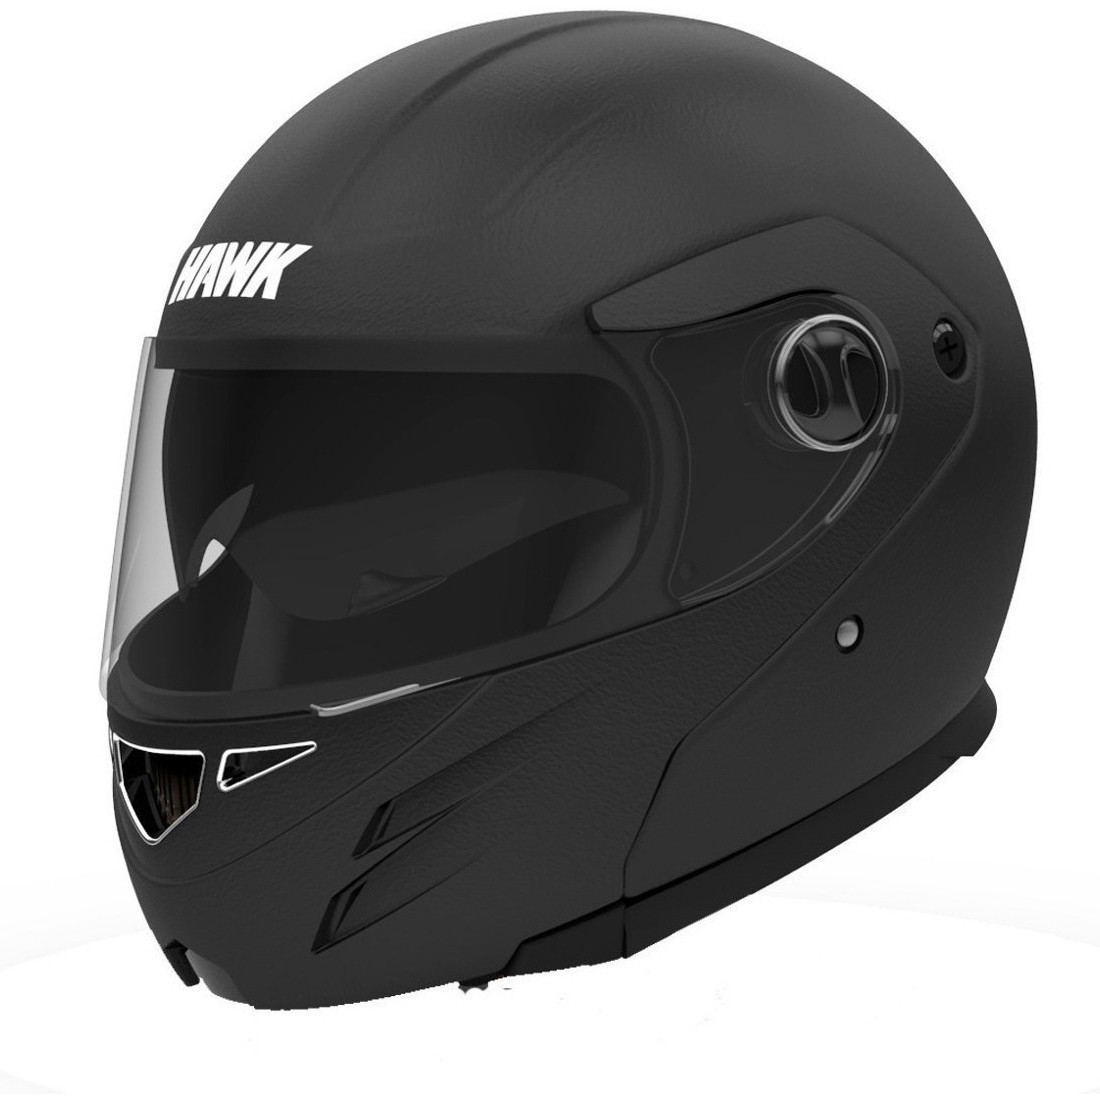 Casco Rebatible Hawk RS5 Thick Negro